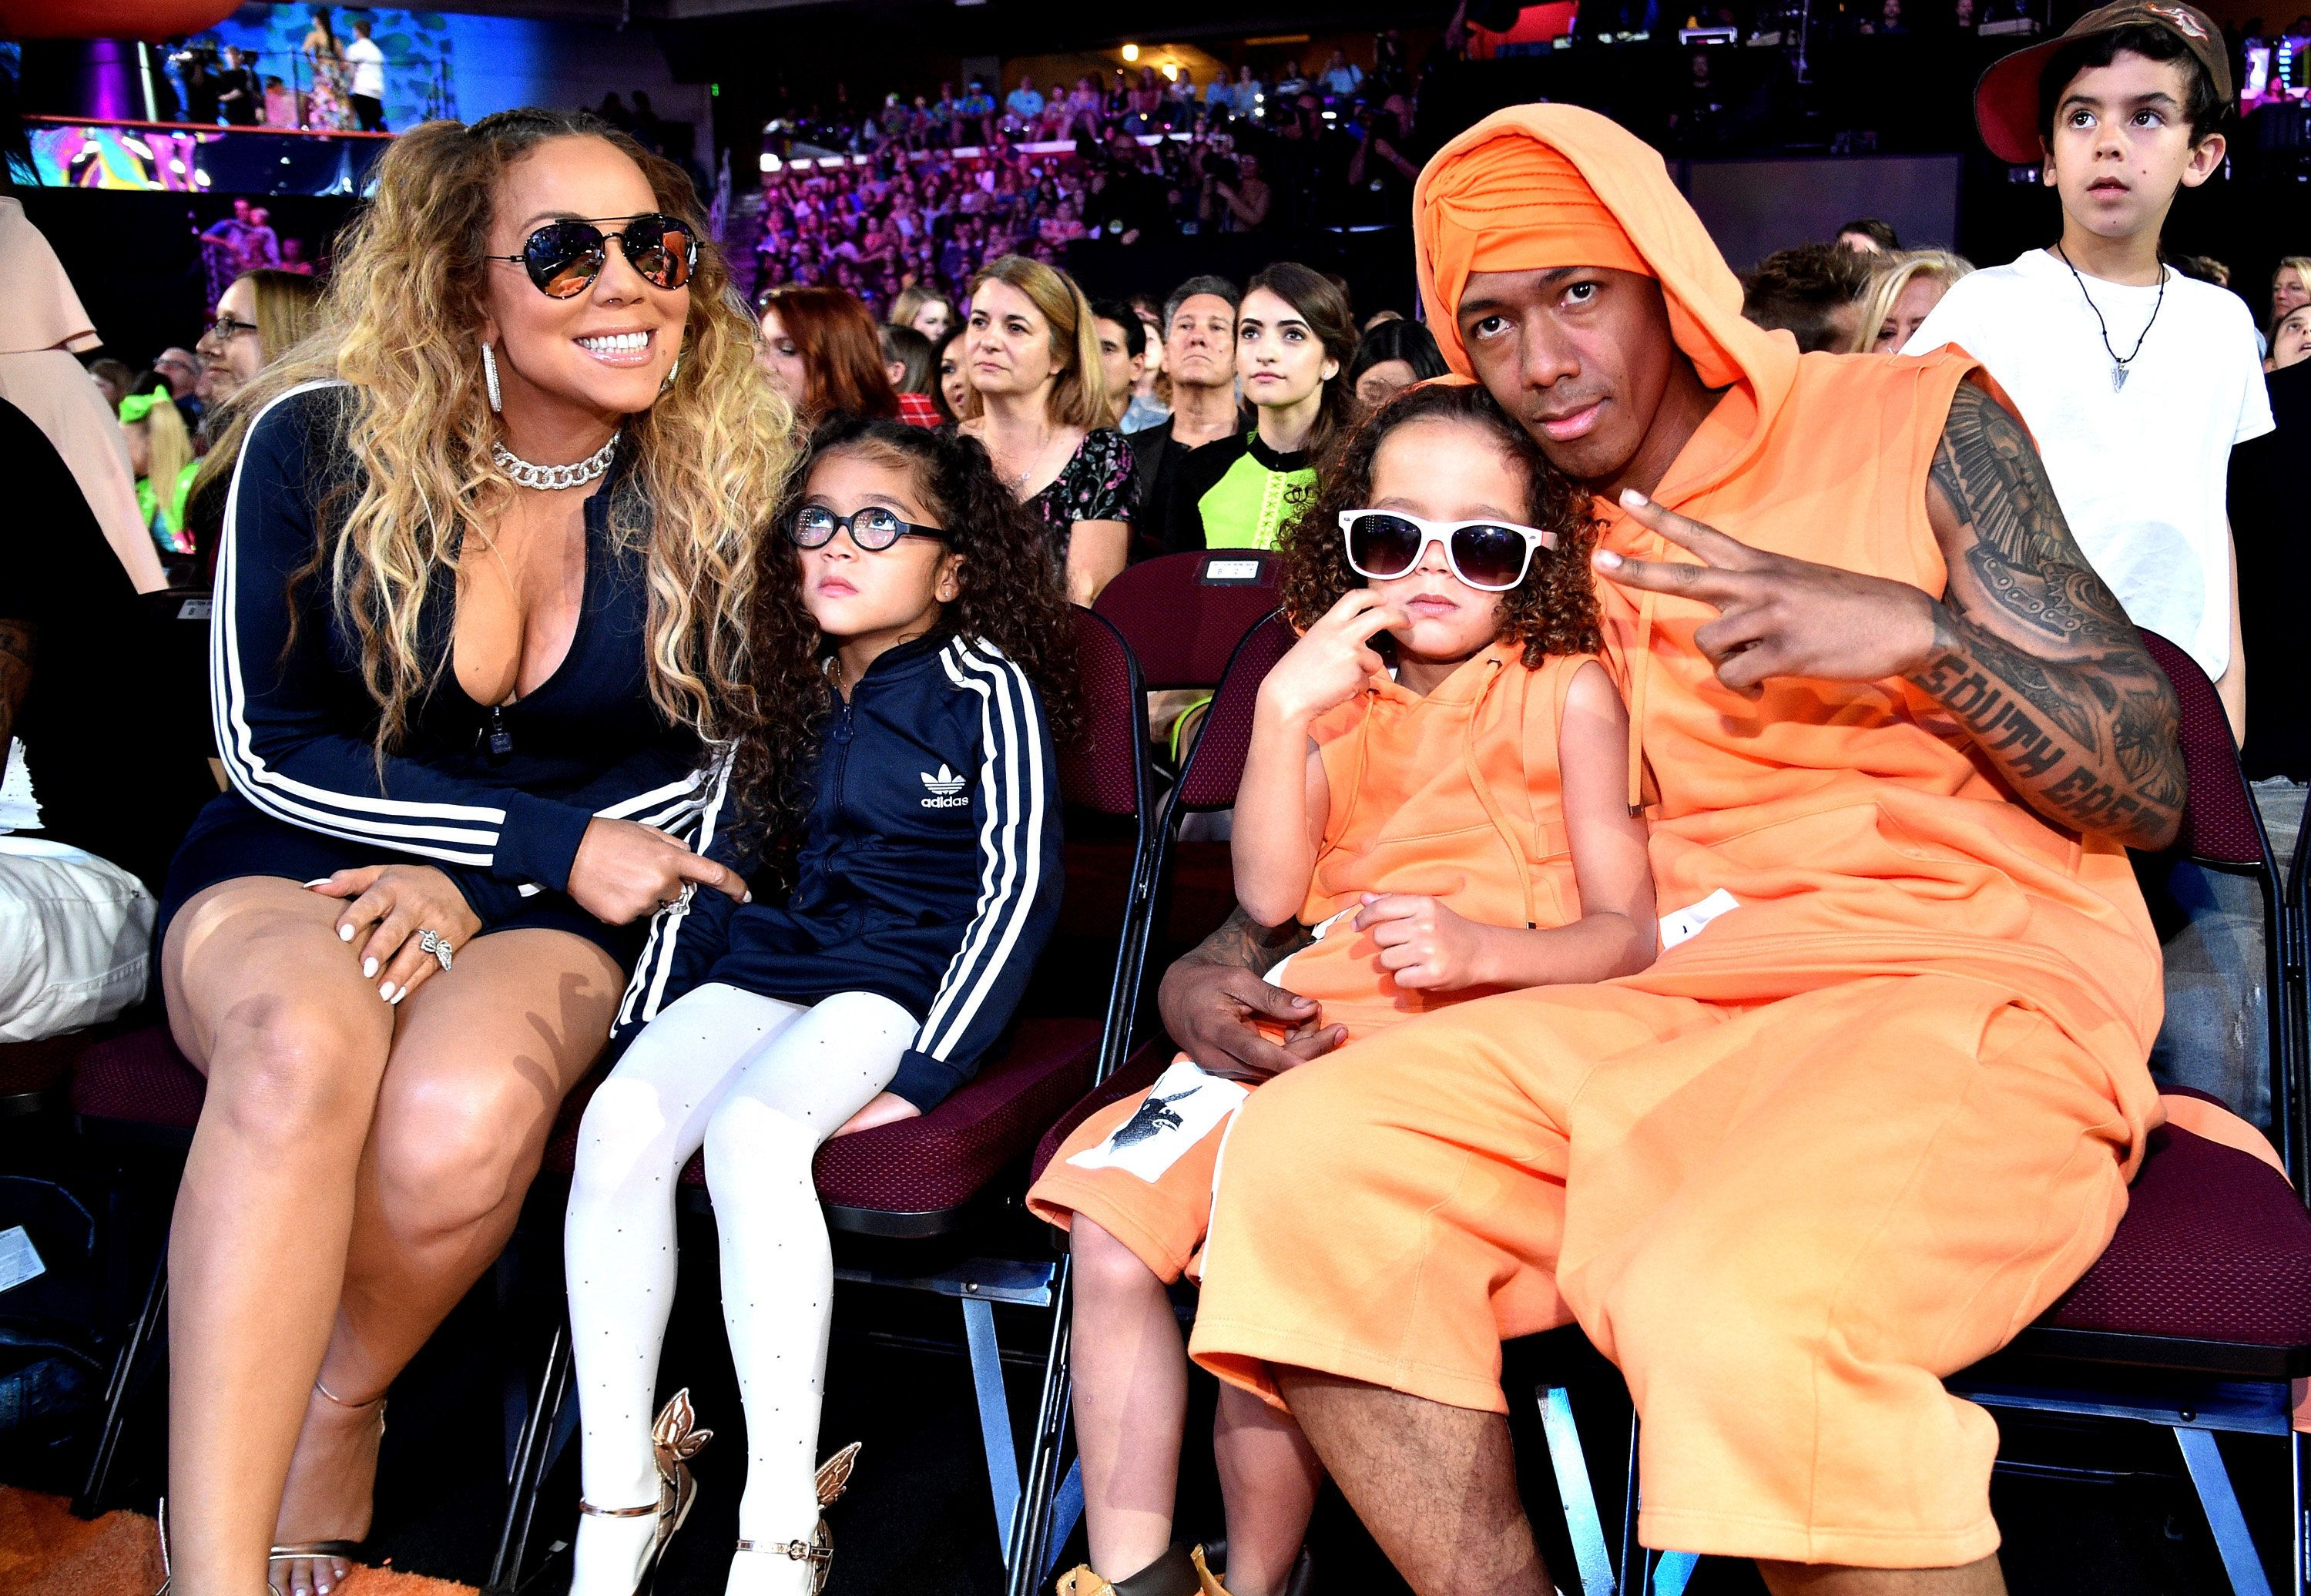 LOS ANGELES, CA - MARCH 11: (L-R) Mariah Carey, Monroe Cannon, Moroccan Scott Cannon and Nick Cannon during at Nickelodeon's 2017 Kids' Choice Awards at USC Galen Center on March 11, 2017 in Los Angeles, California.  (Photo by Kevin Mazur/KCA2017/WireImage)